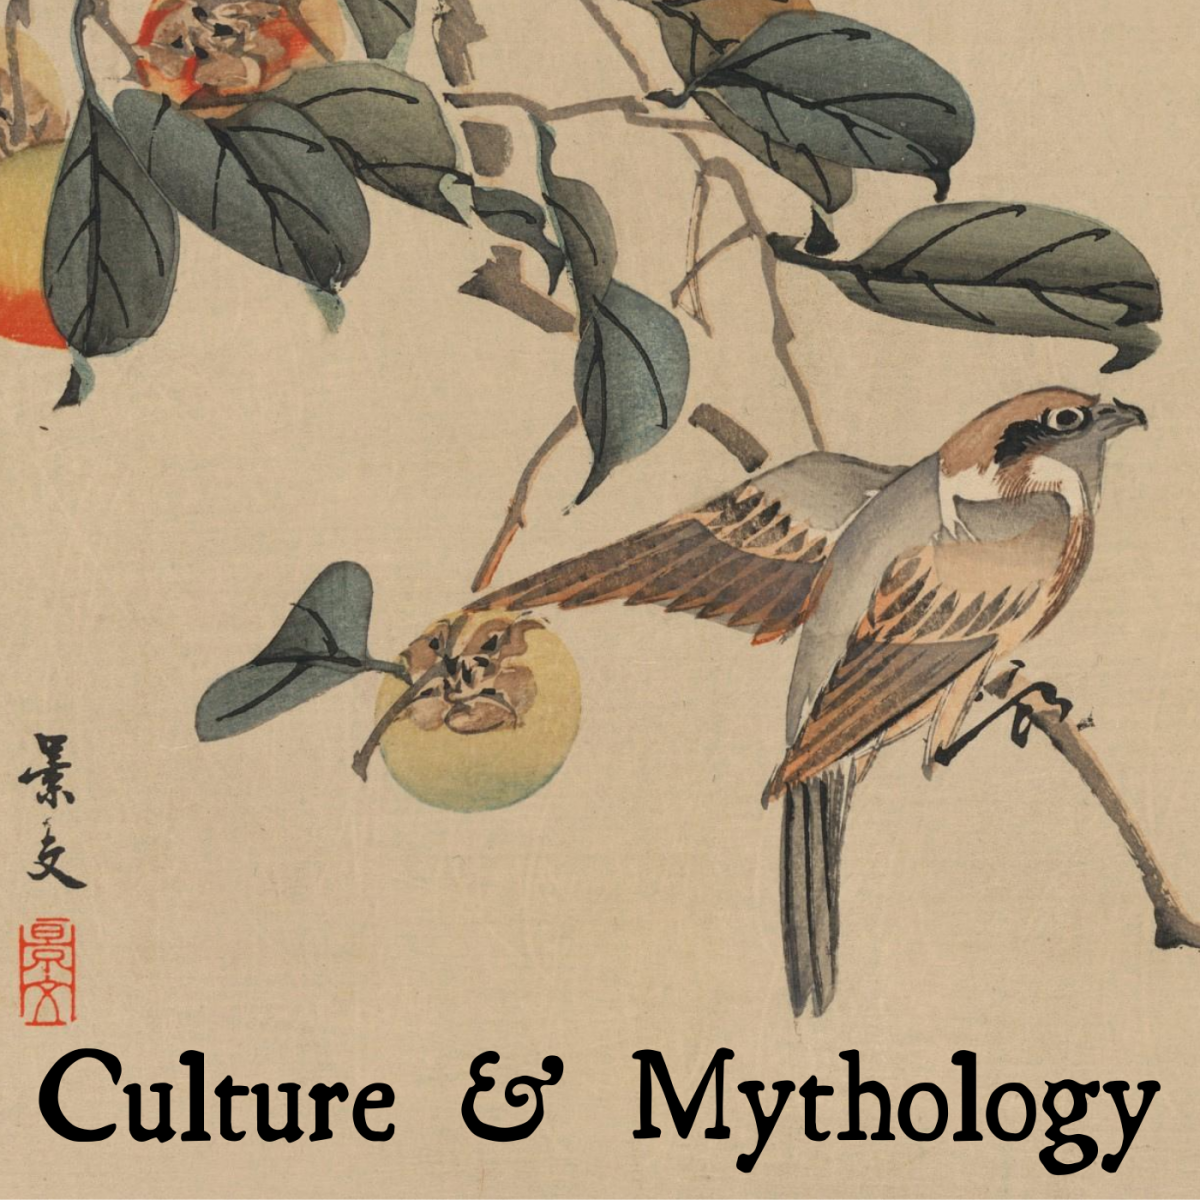 The sparrow has mythological significance in a variety of cultures.